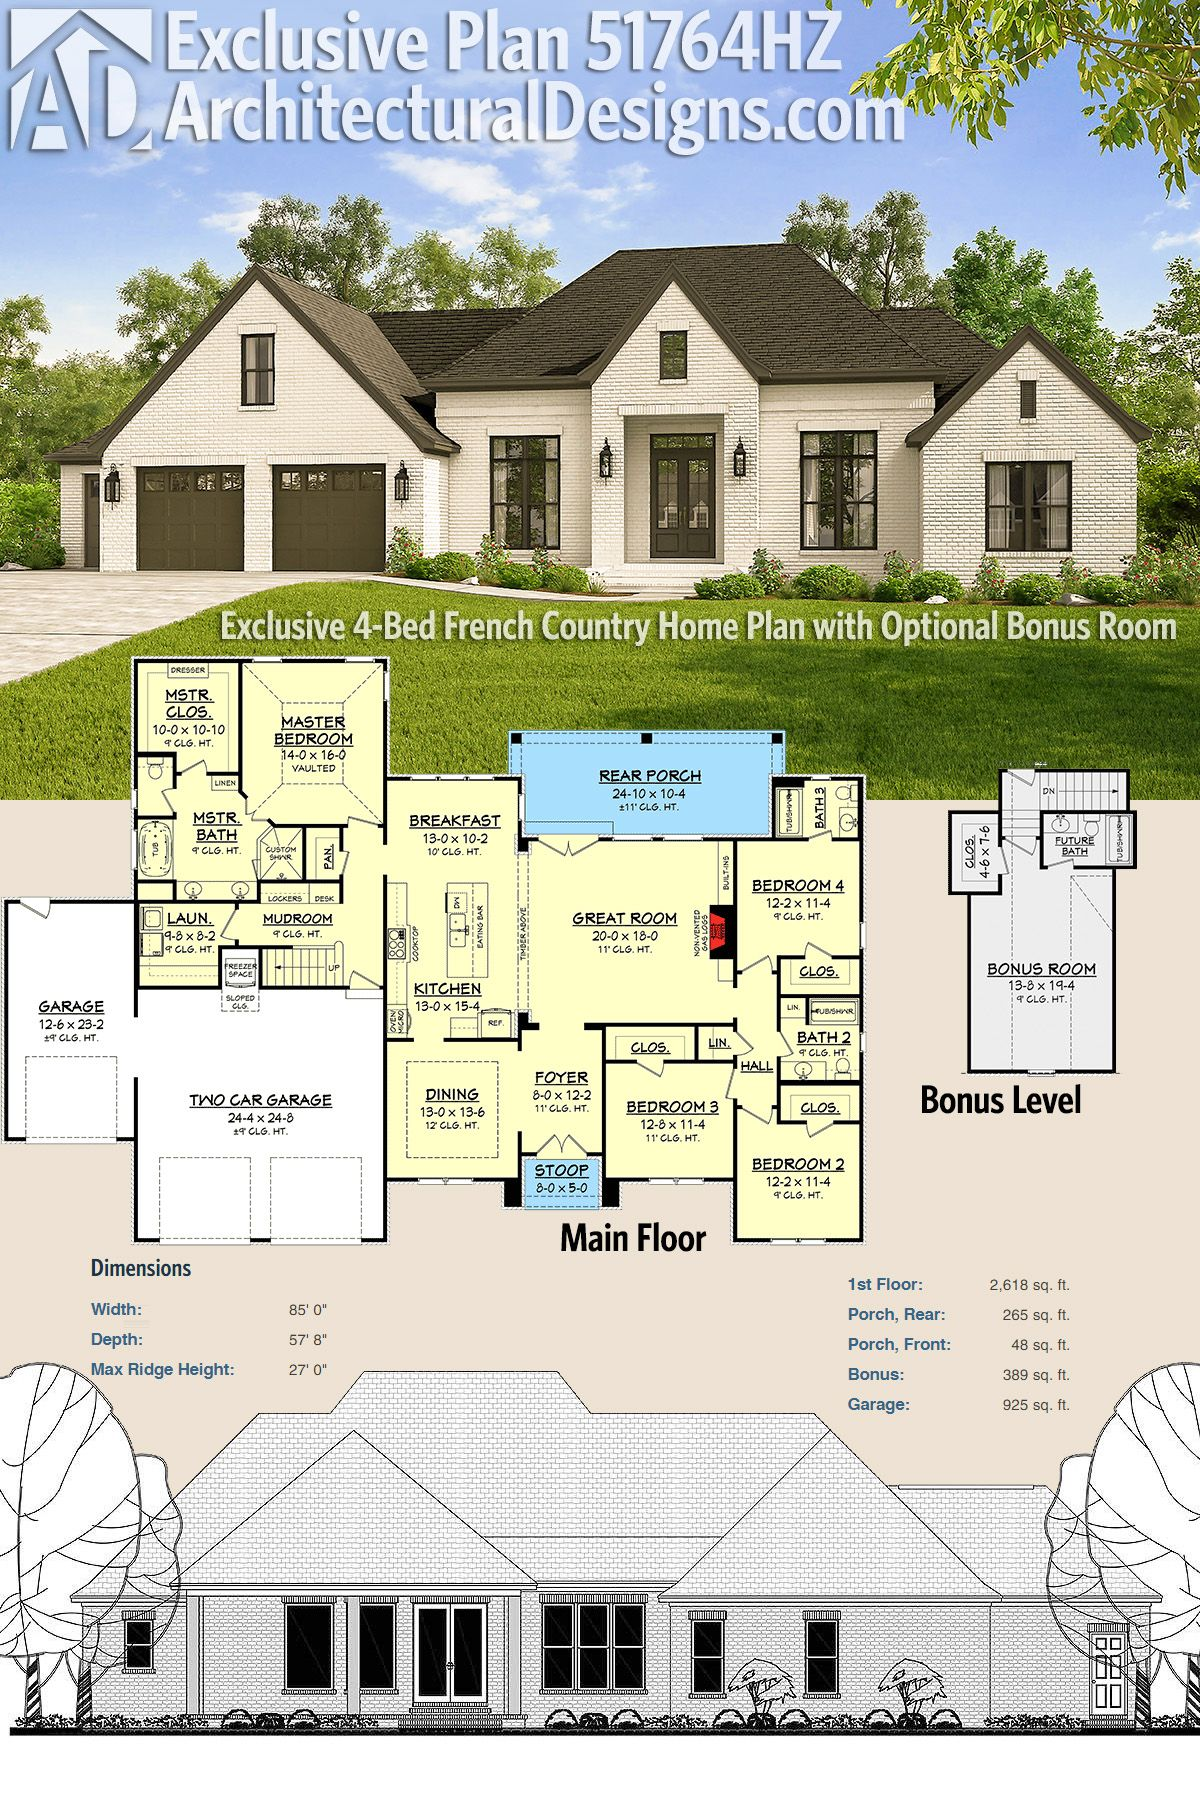 Plan 51764hz exclusive 4 bed french country home plan Italian country home plans